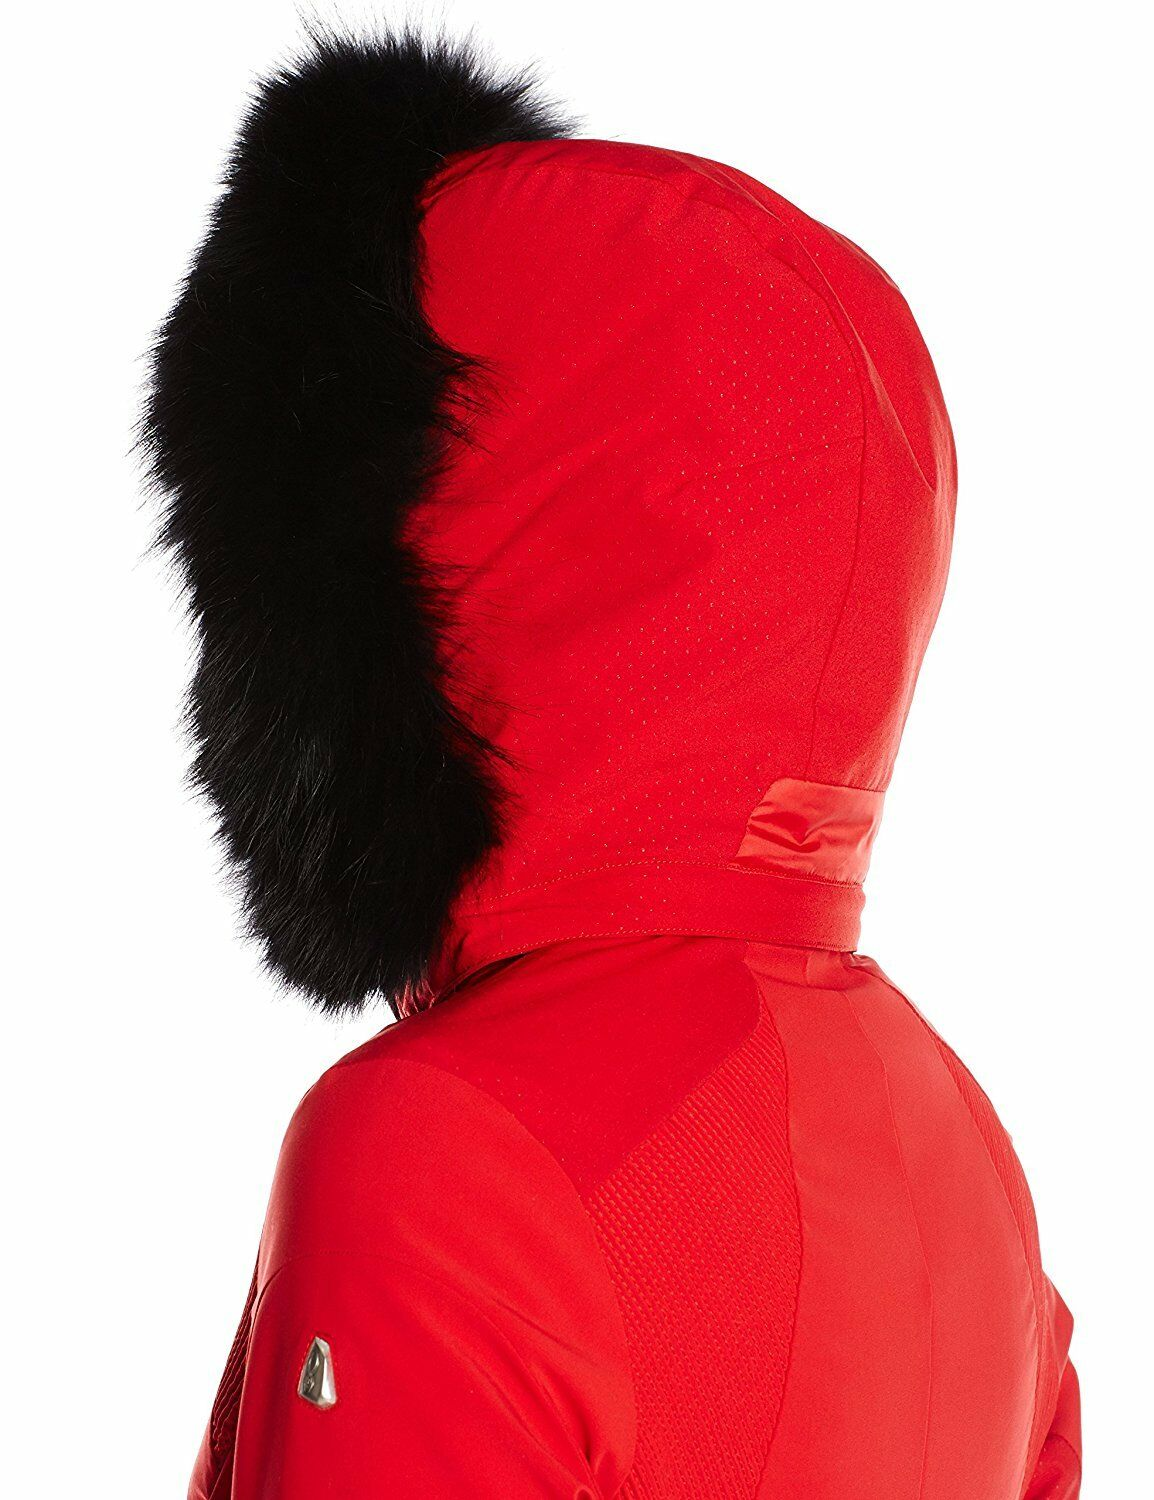 94406992316bb Spyder Women s Posh Real Fur Jacket 154004 Red Vampire Size 6 for ...